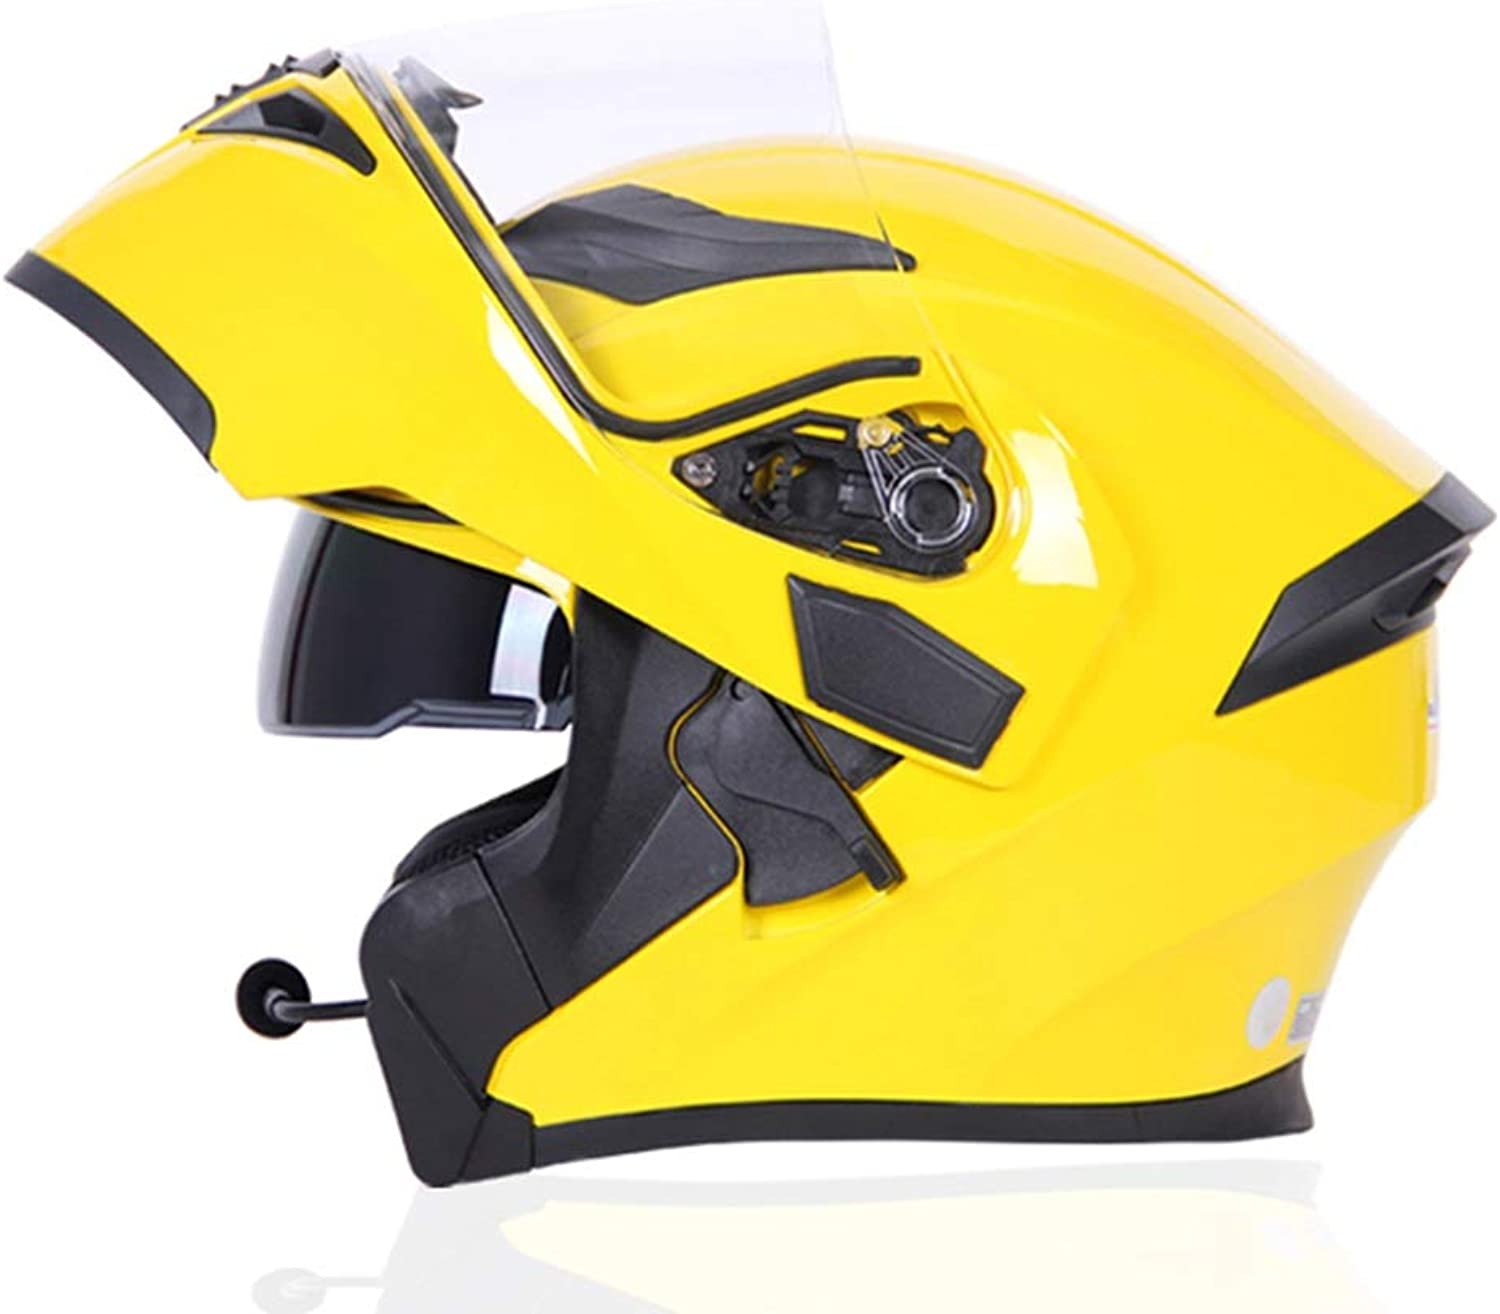 Lanbinxiang@ Multifunction blueeetooth Helmet Double Lens Men and Women Full Face blueeetooth Helmet Personality Cool Motorcycle Racing Helmet Yellow   10 Meters Can Be Connected to blueeetooth Predection